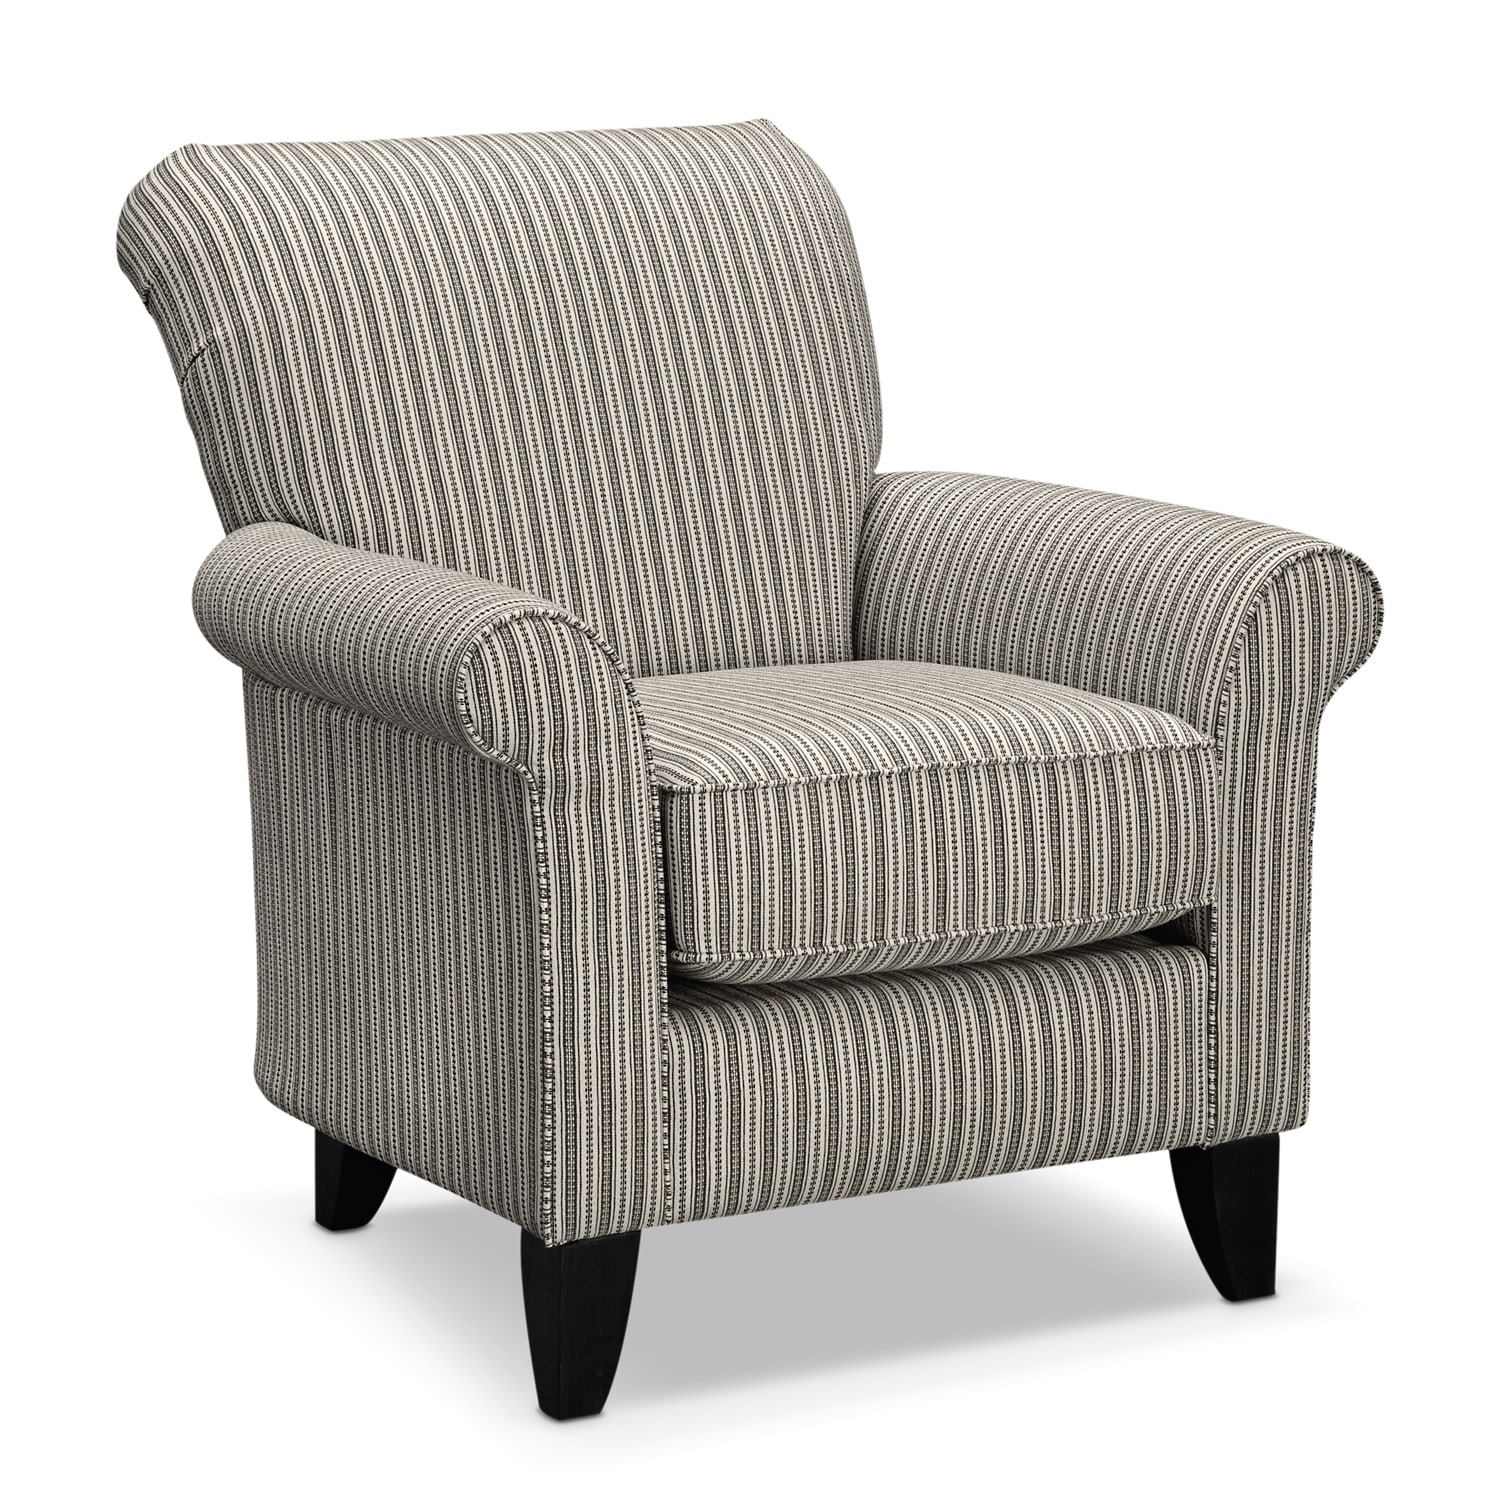 Living Room Chairs Living Room Chairs Chaises Value City Furniture Value City